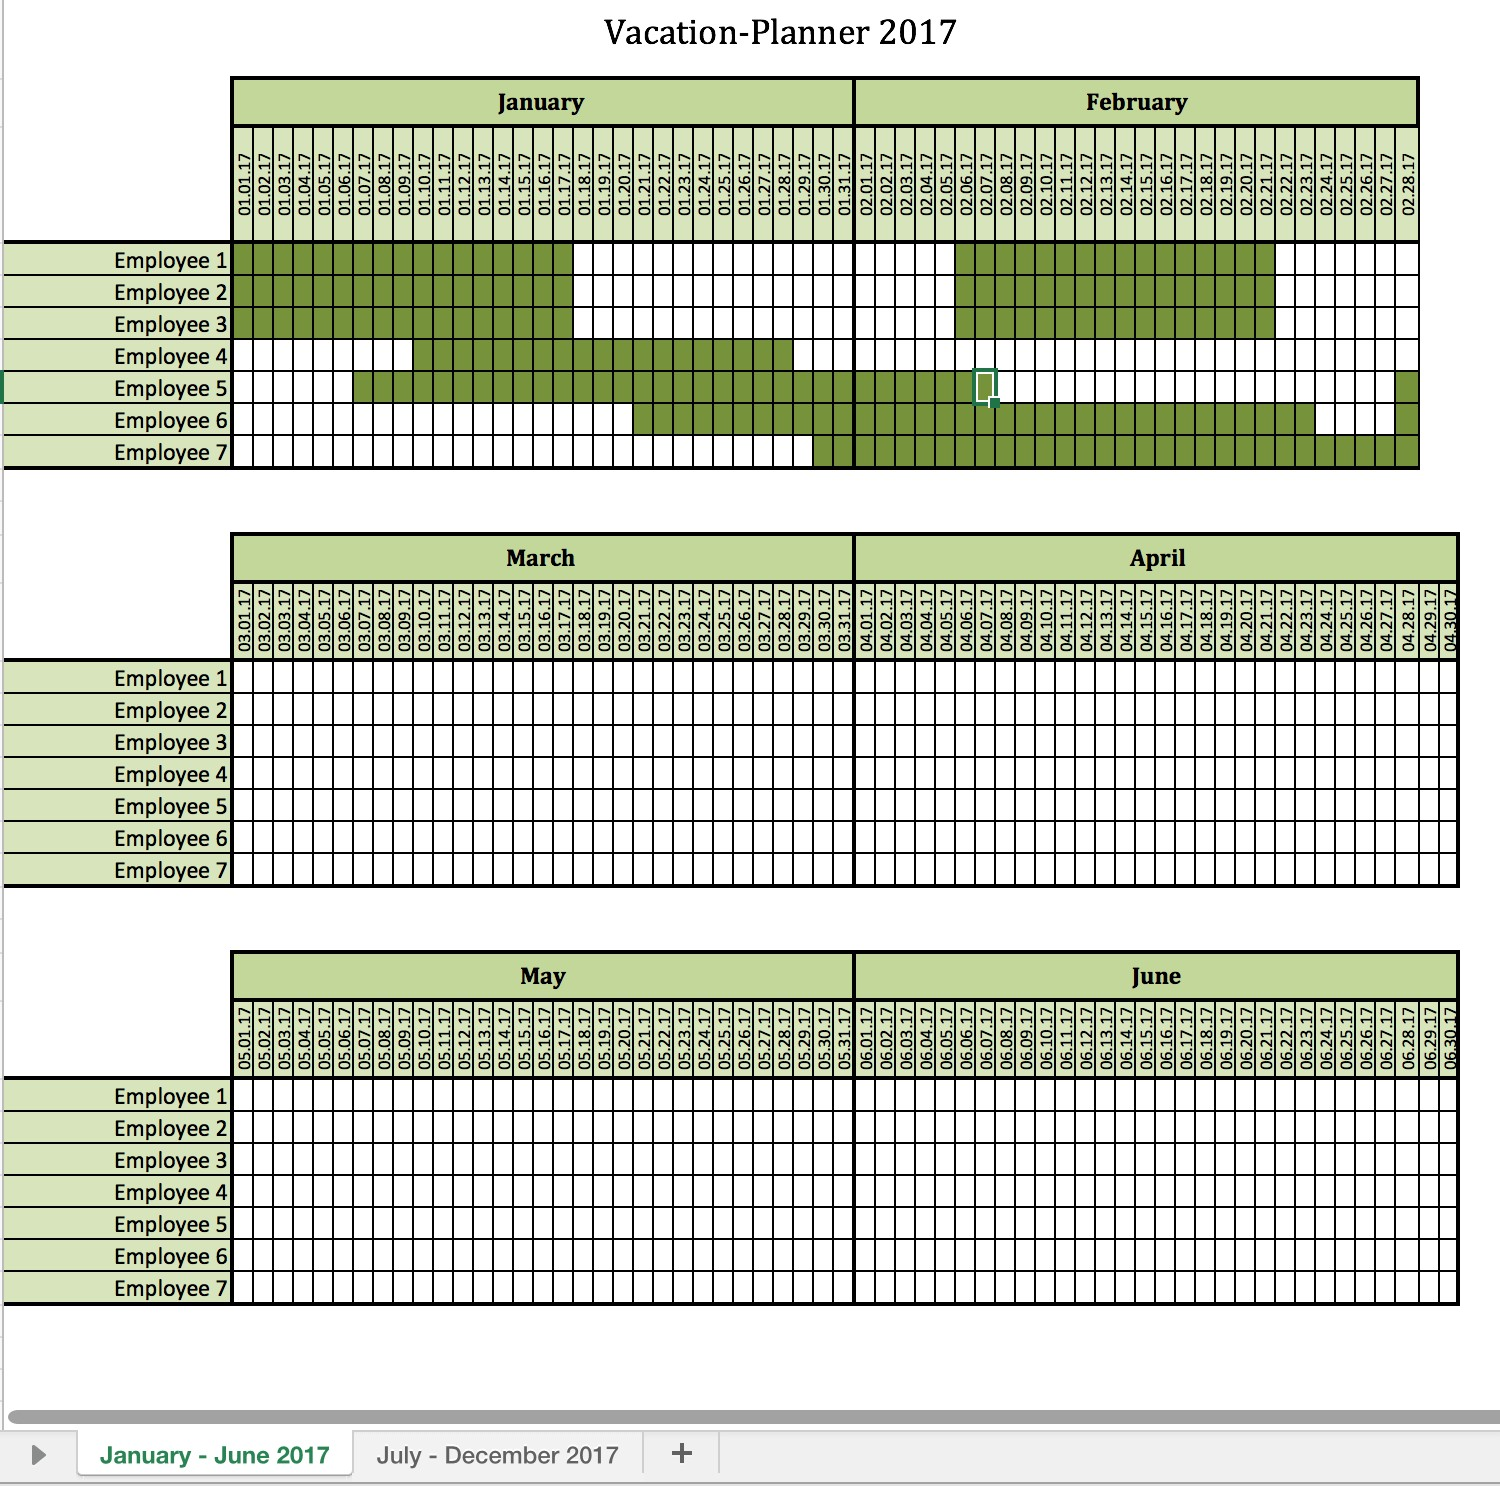 team vacation calendar template  Employee Vacation Planner Template Excel | printable ..